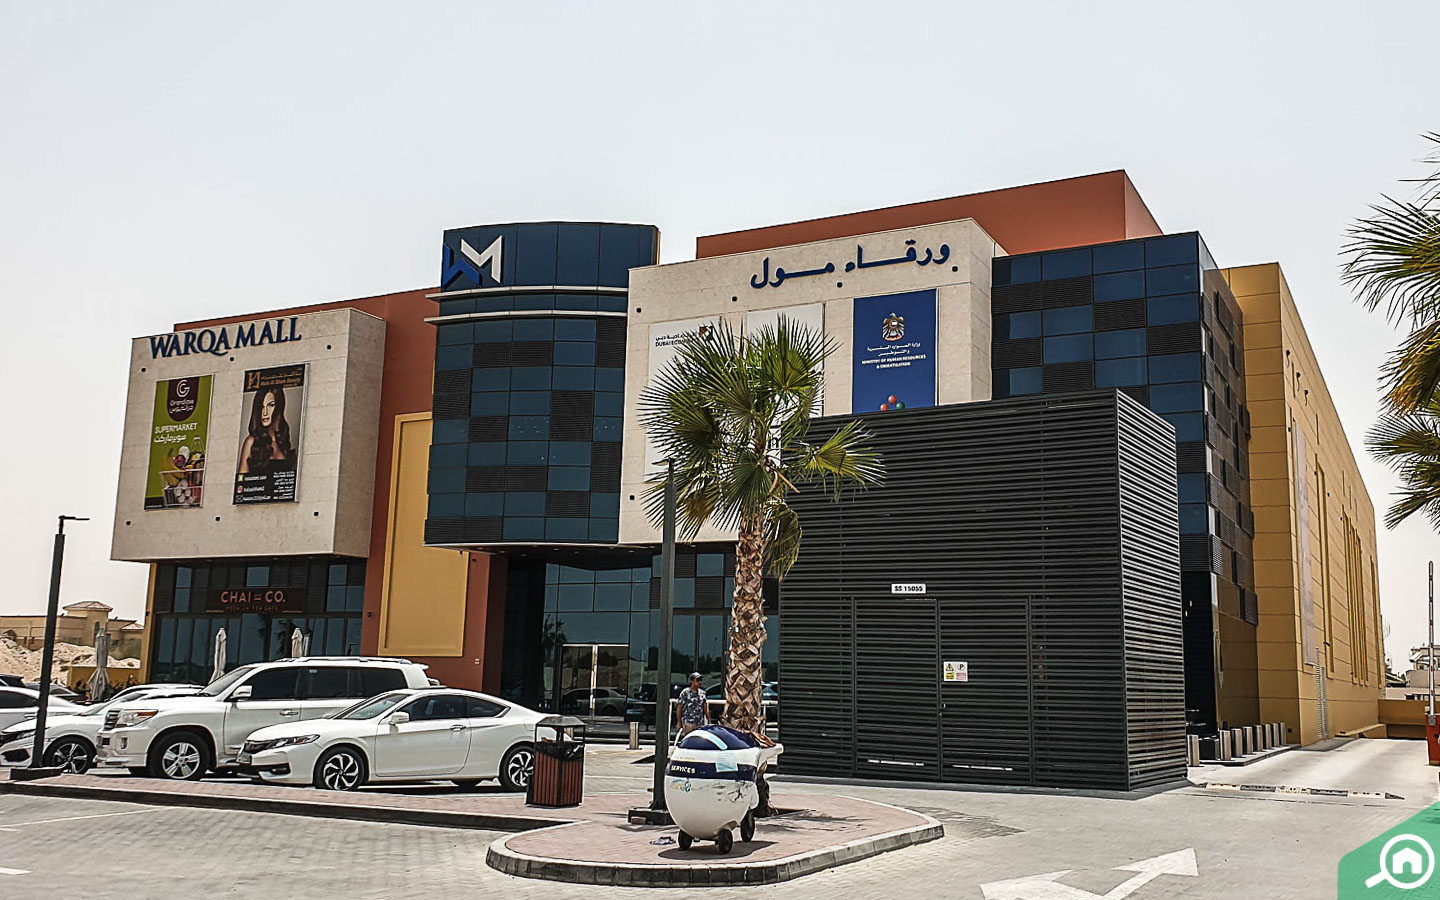 Mall in the area